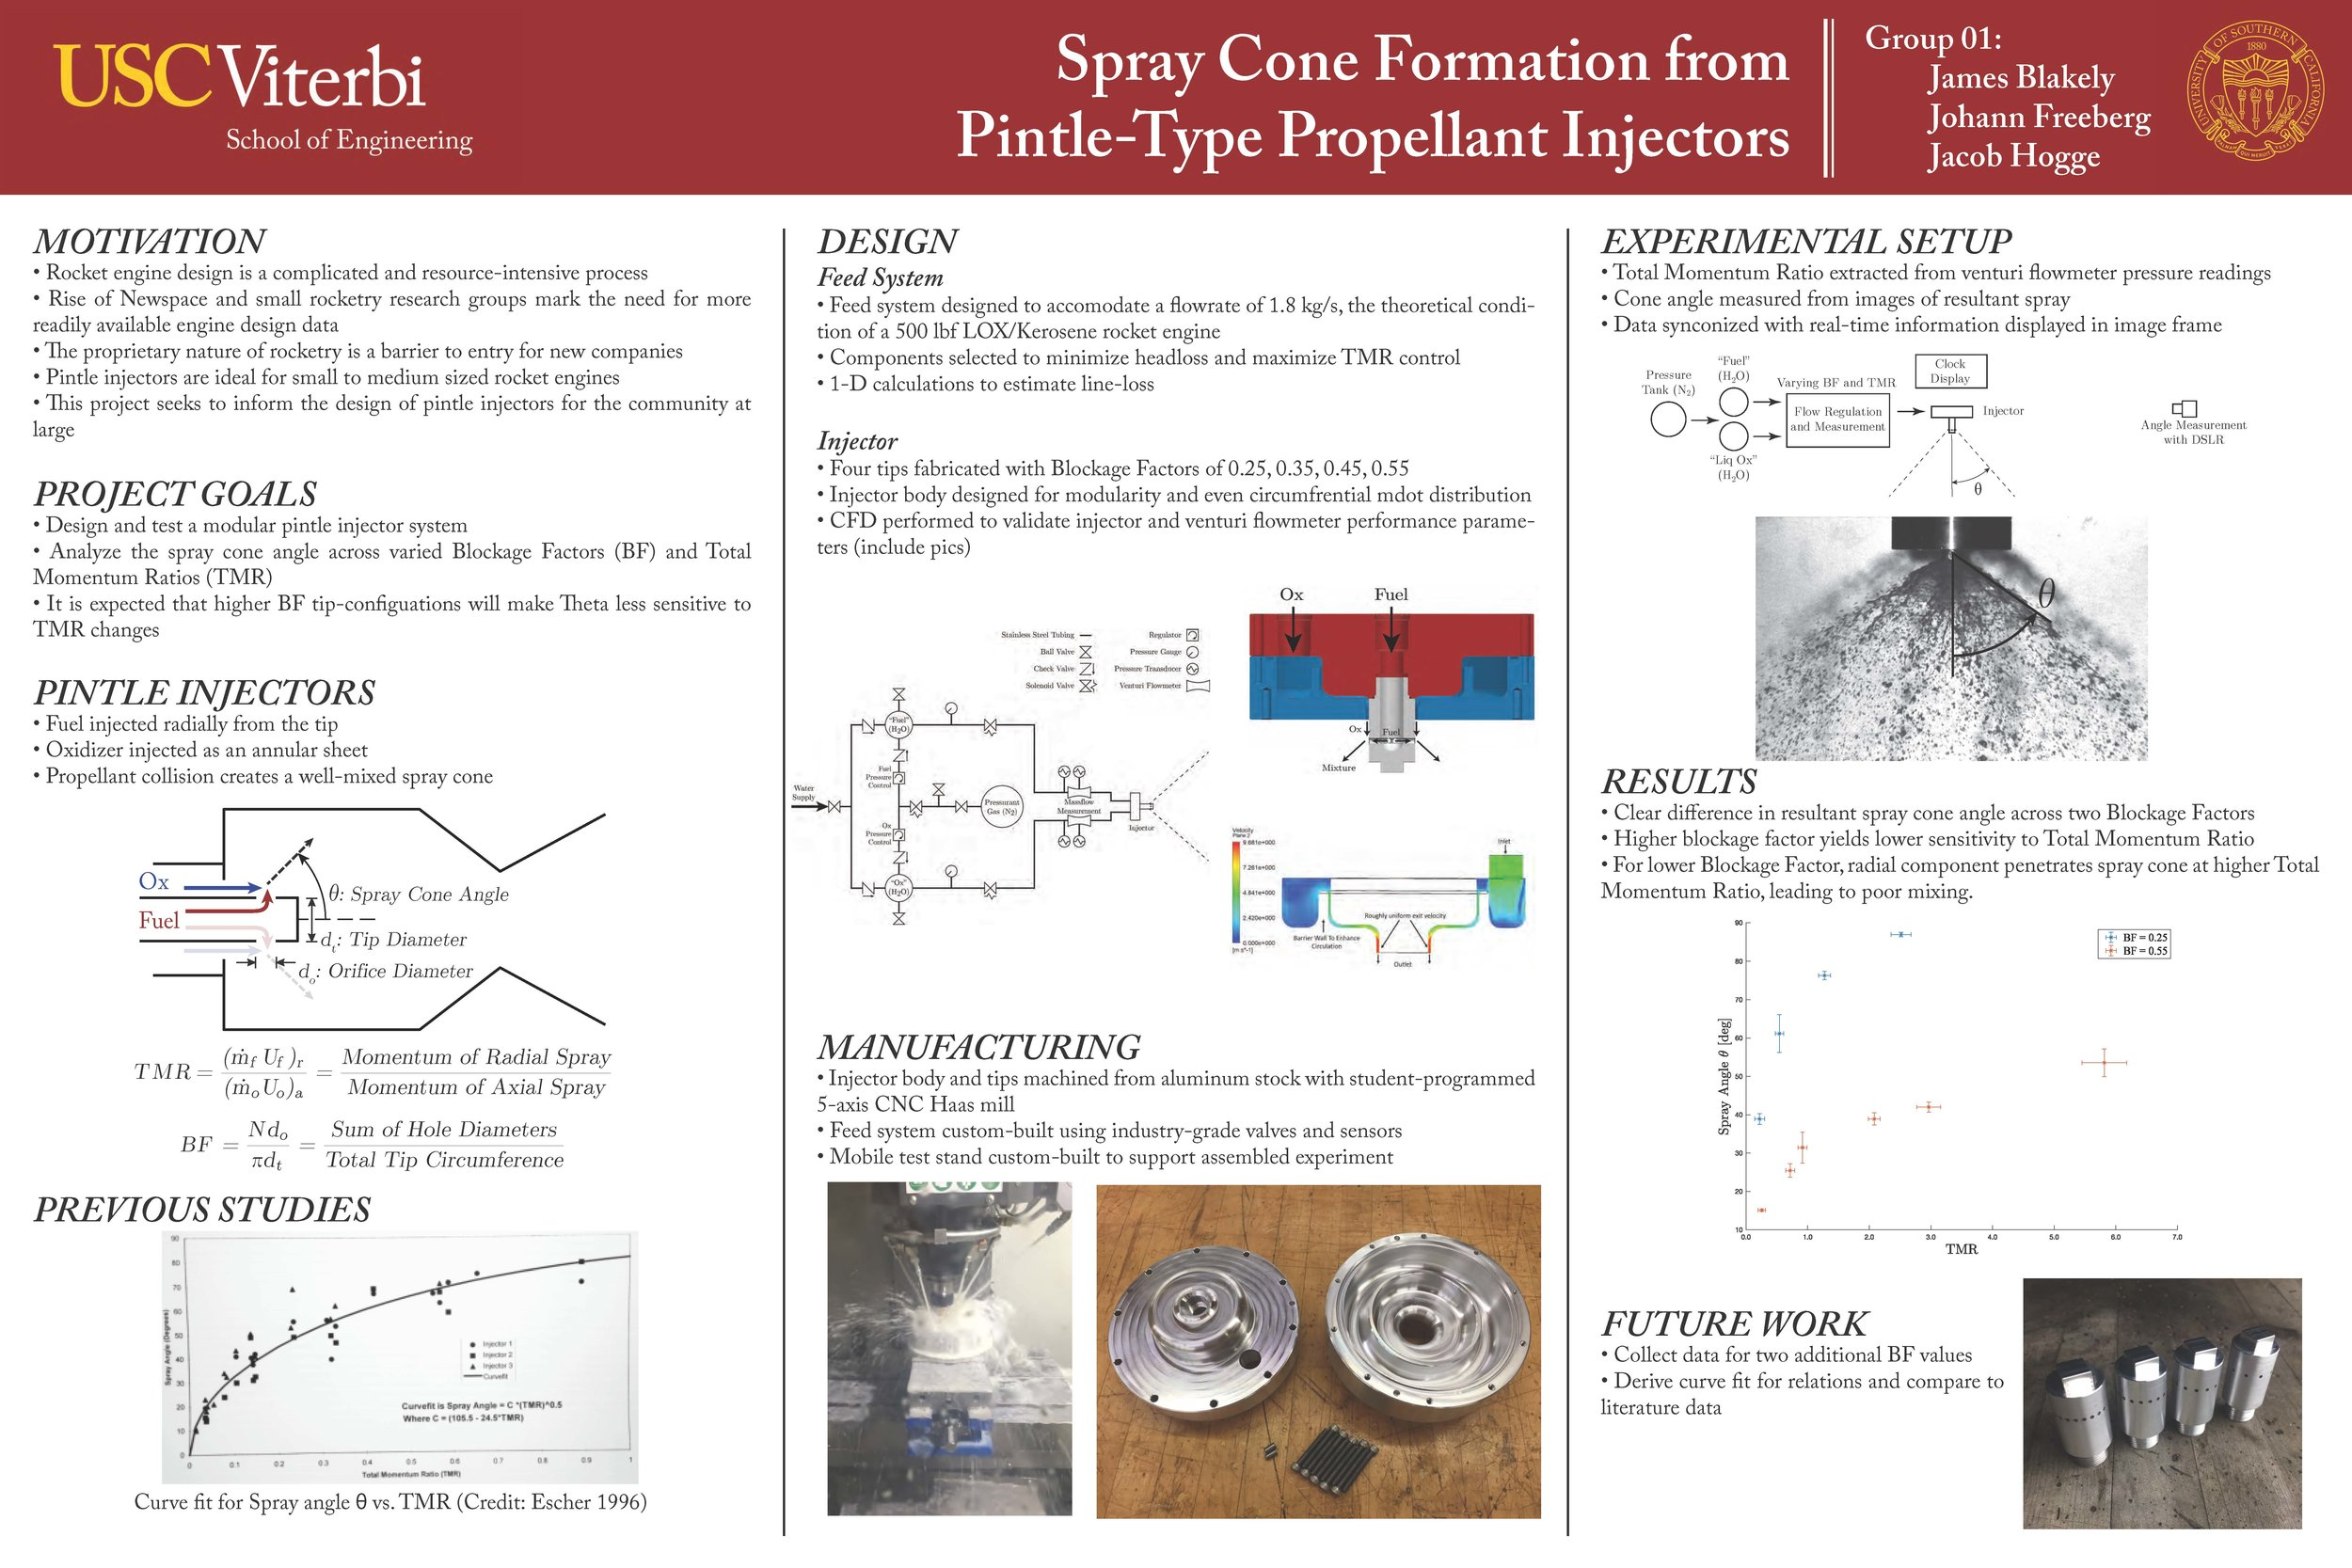 Pintle_Injector_Research_Poster_BLAKELY_FREEBERG_HOGGE.jpg